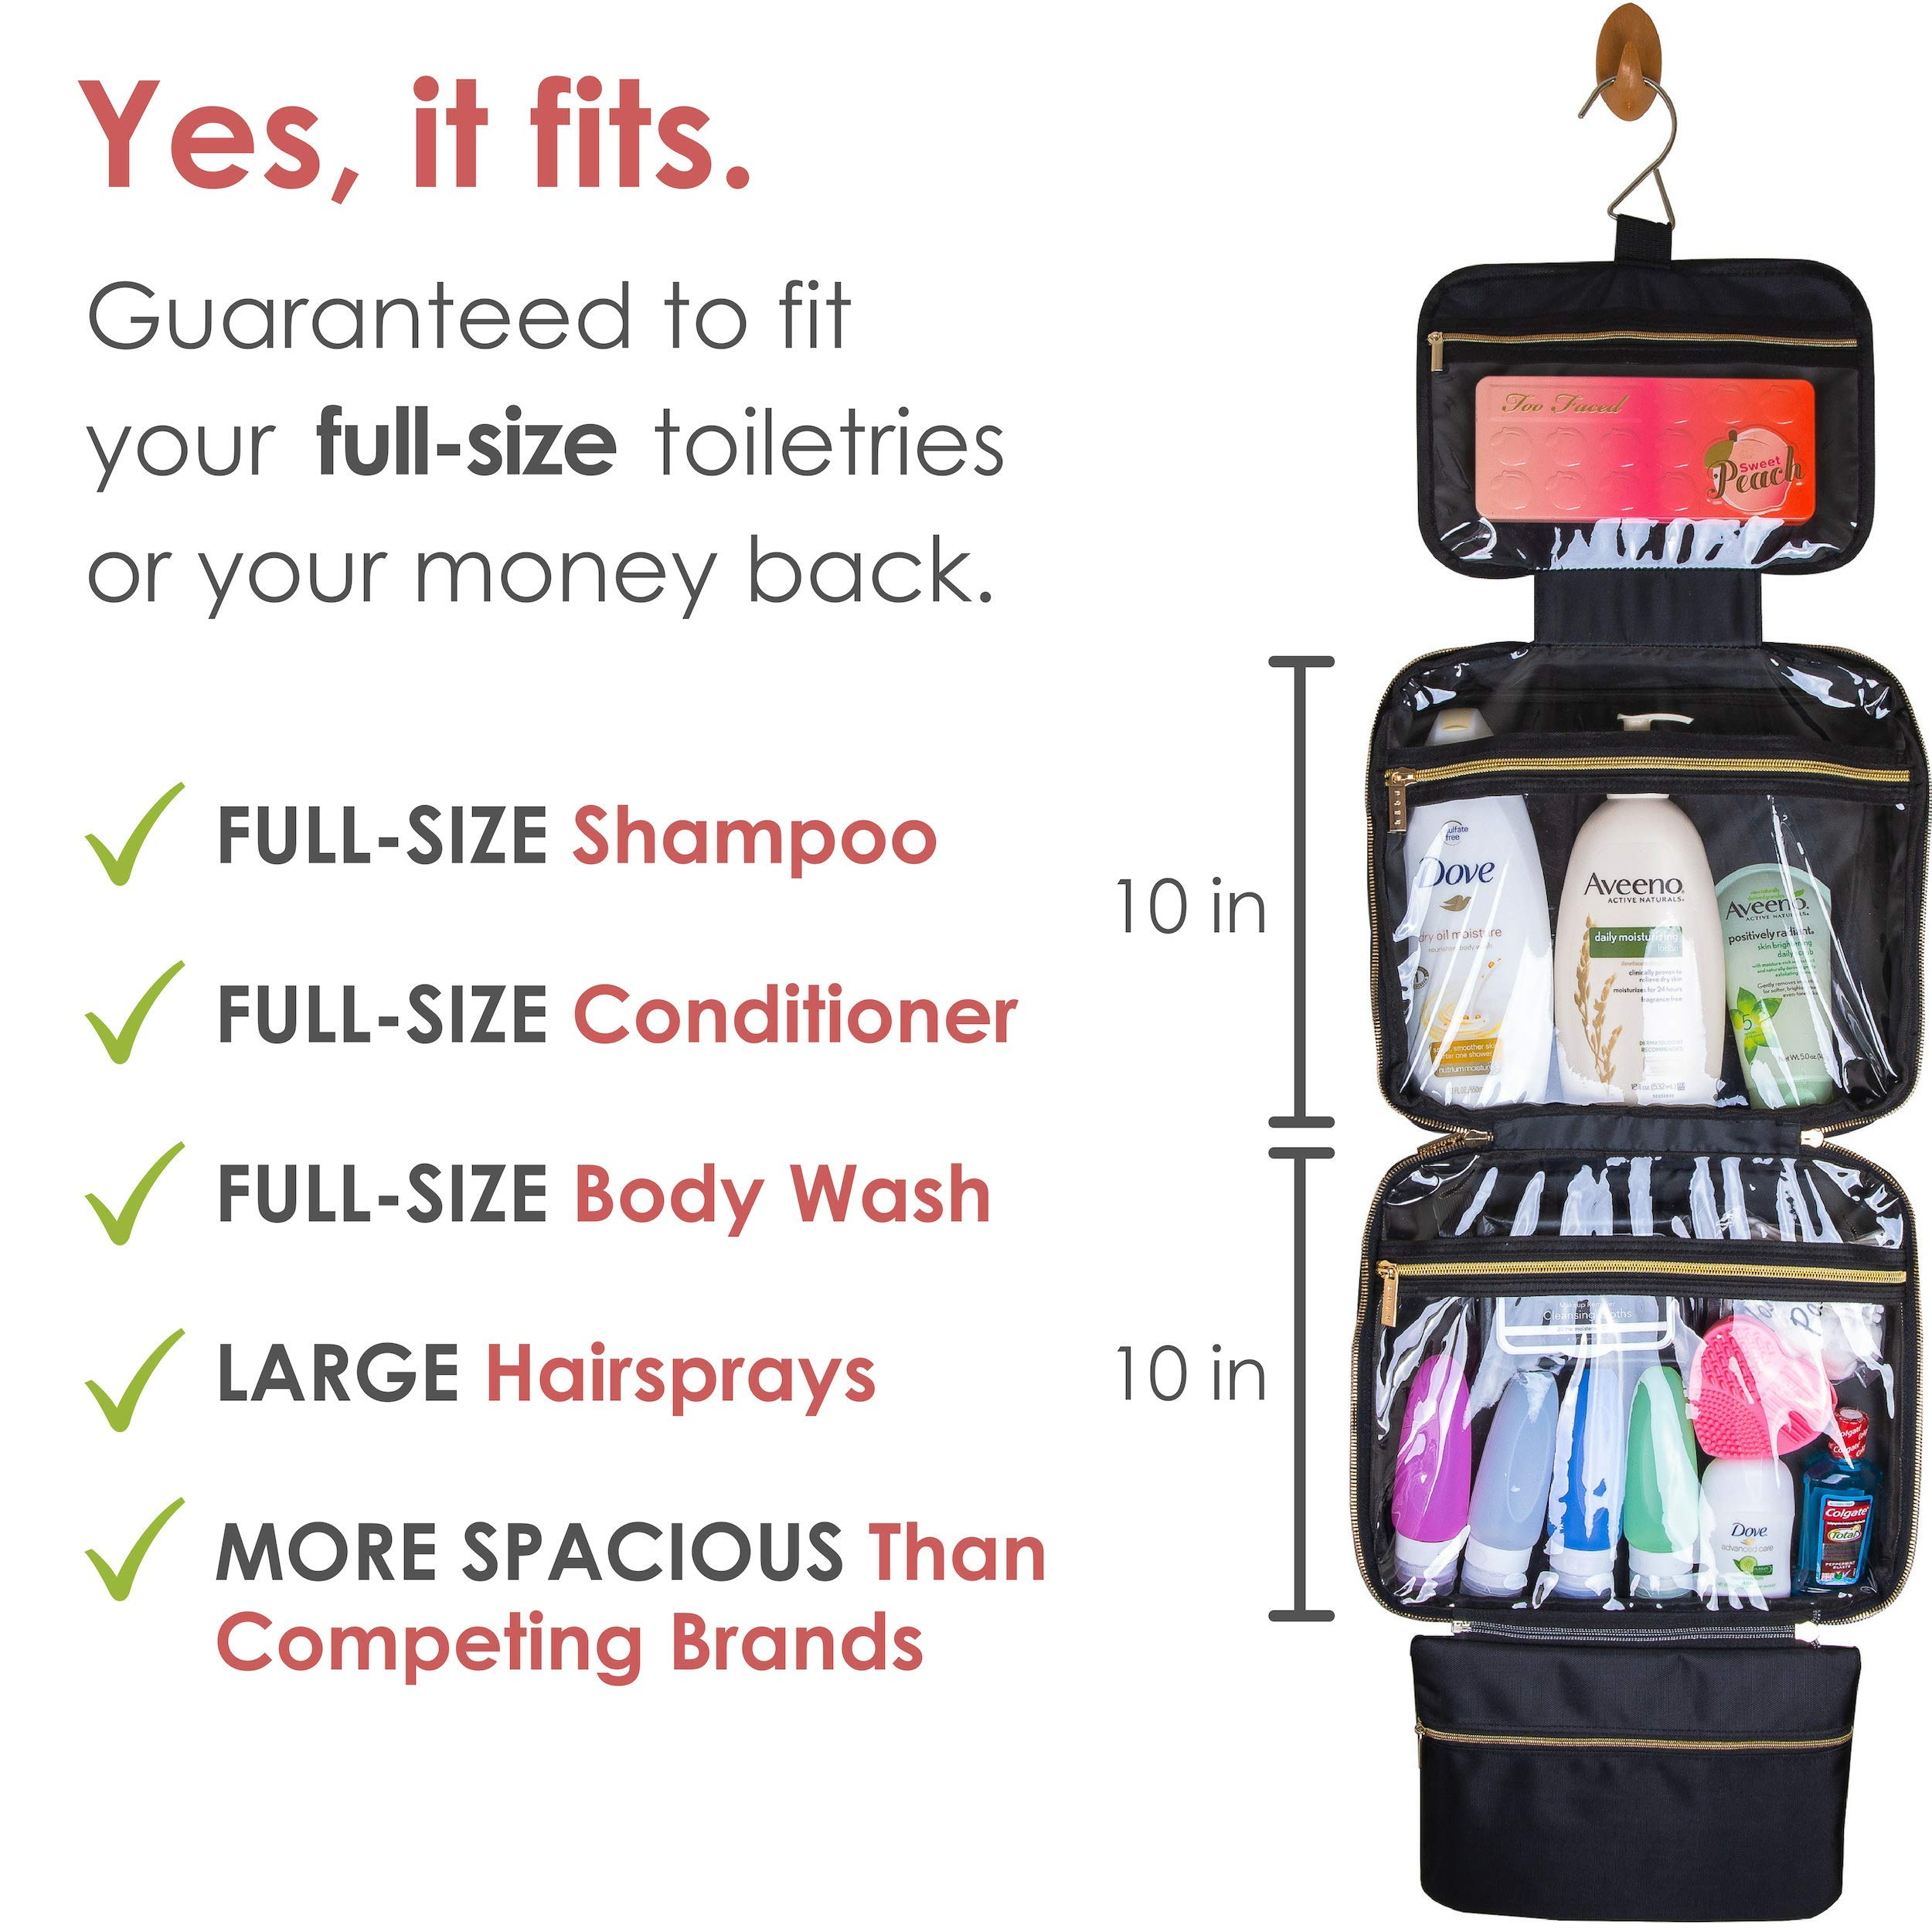 habe XL Hanging Travel Toiletry Bag | 4 BONUS Travel Bottles | Fits FULL SIZE Toiletries | Travel Makeup Bag | EXTRA LARGE Cosmetic Bags Organizer for Women | 3-IN-1 Bathroom, Make Up and Shower Kit by häbe (Image #3)